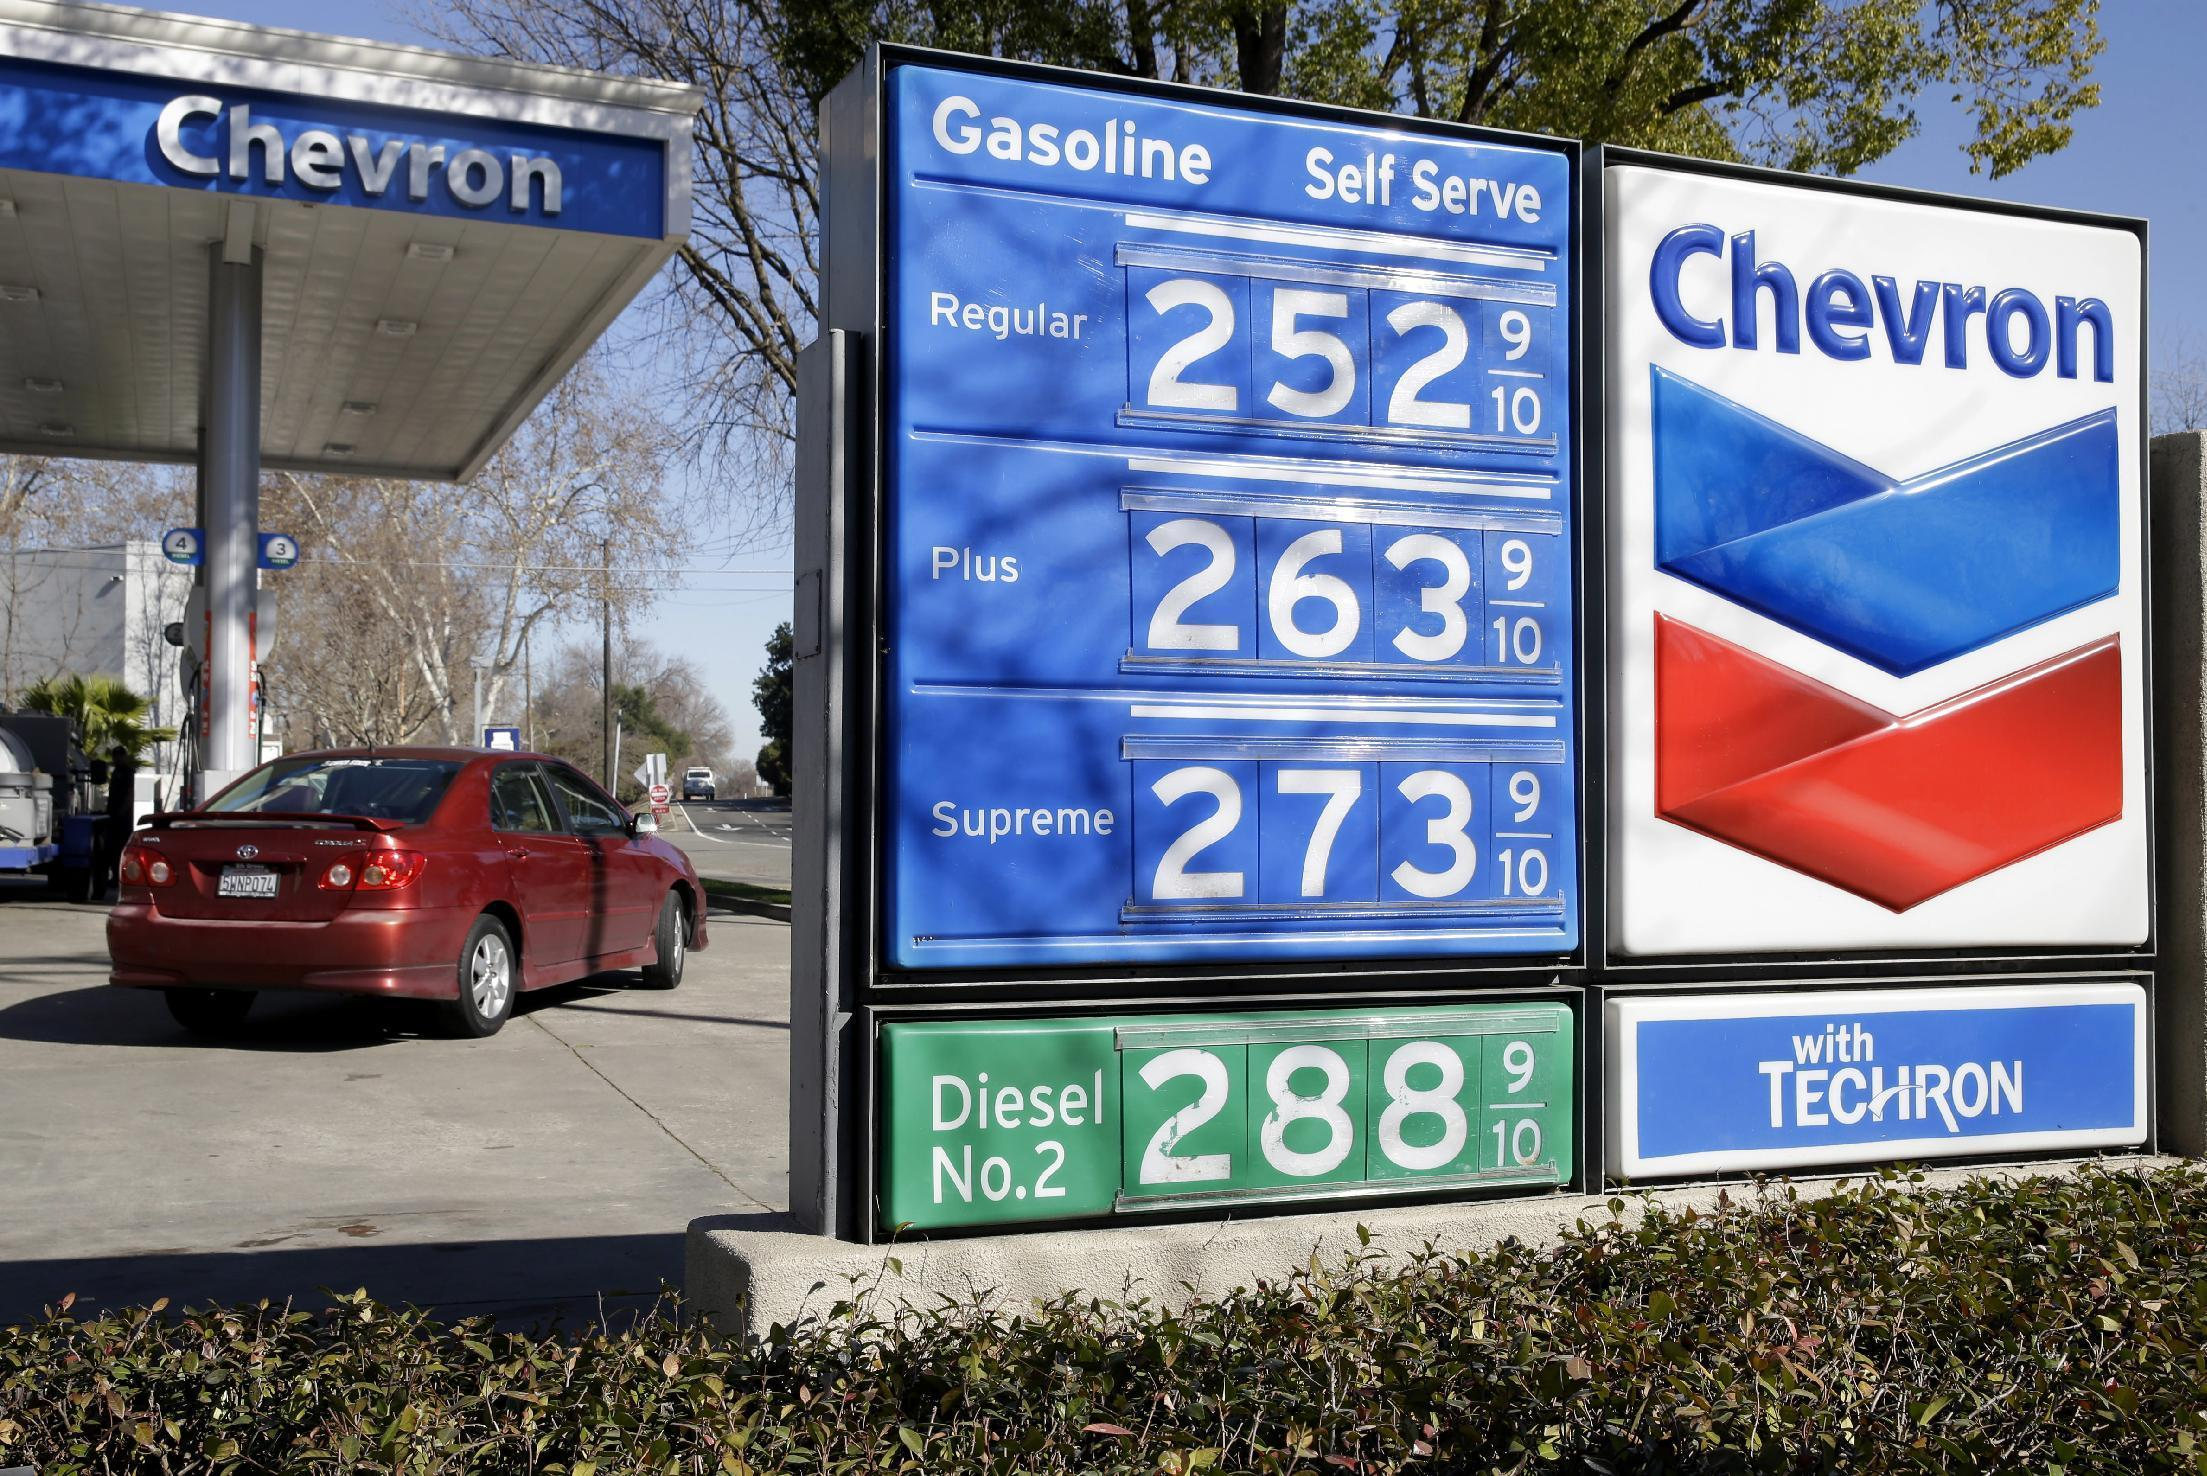 Exxon sees smallest profit in 16 years, Chevron posts loss